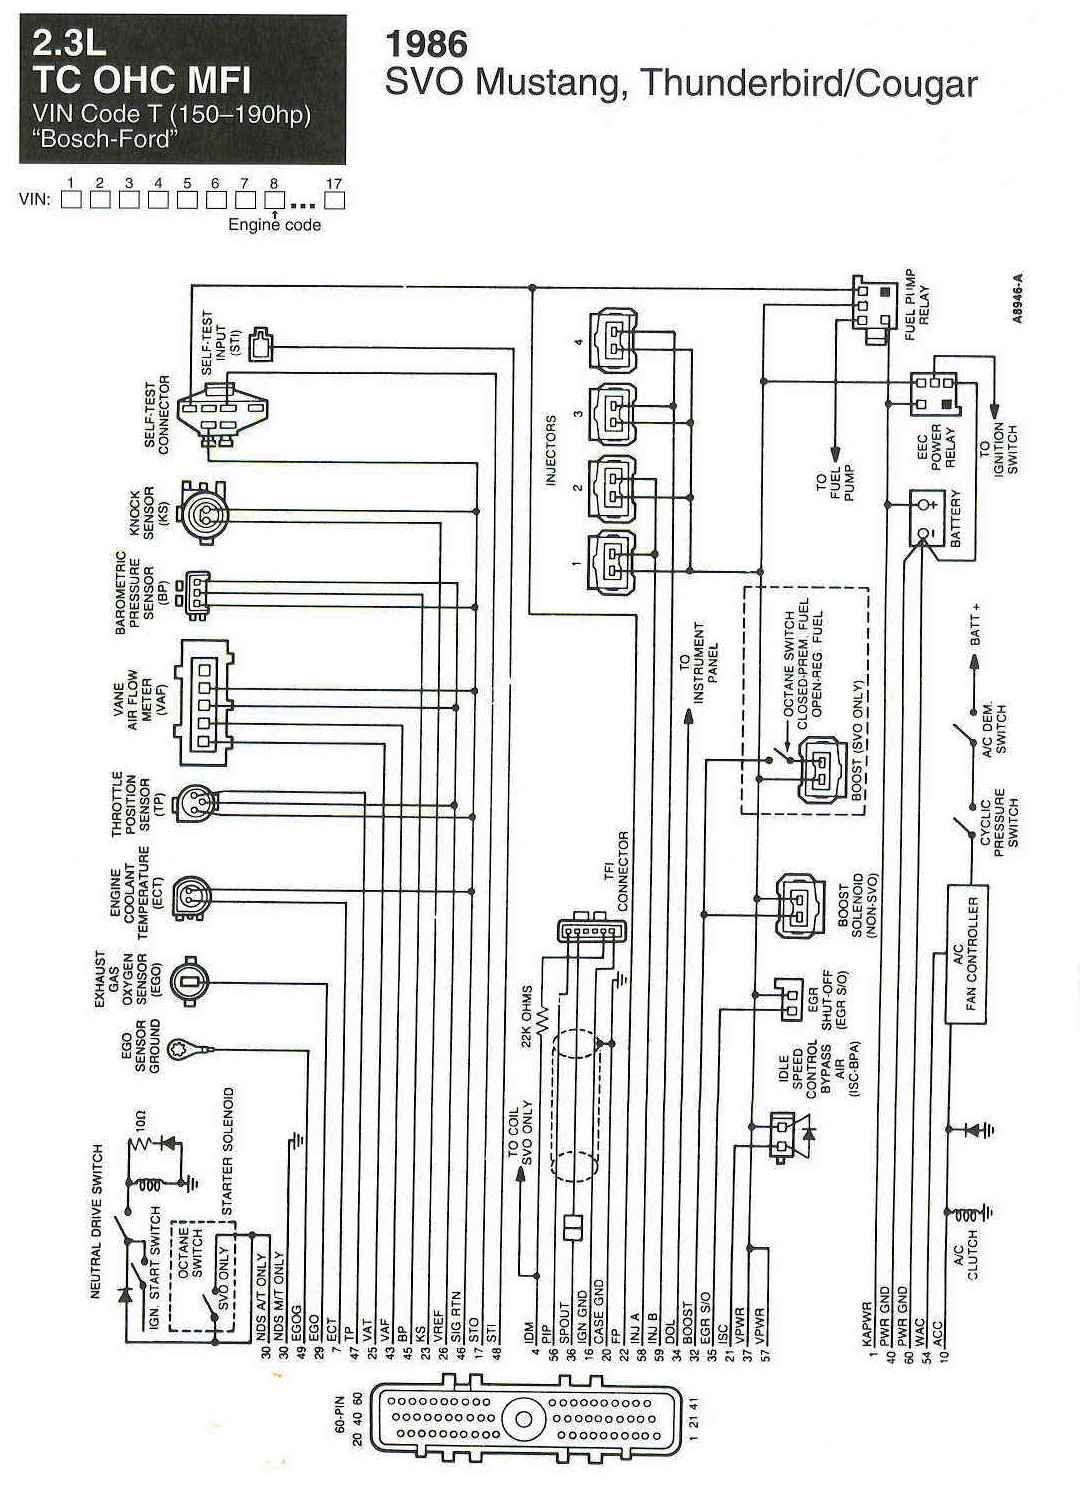 Bosch Gas Gauge Wiring Trusted Diagrams 1986 F150 Fuel Diagram Svo Mustang Diy Enthusiasts U2022